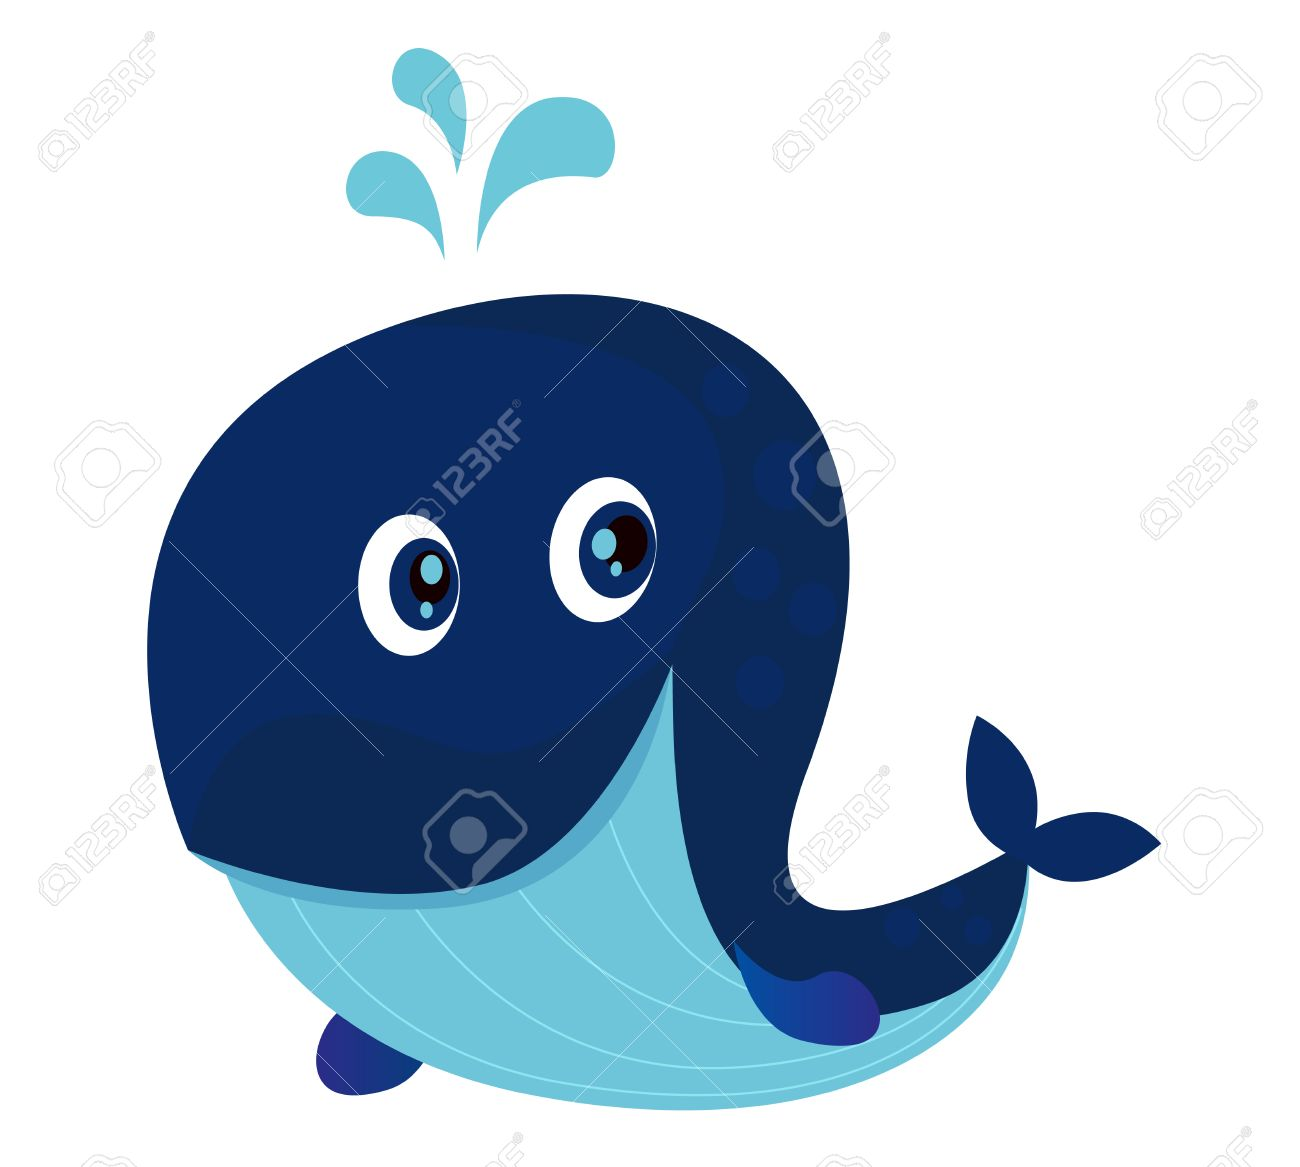 Cute whale in water cartoon isolated illustration stock photography - Cartoon Whale Big Blue Ocean Cartoon Whale